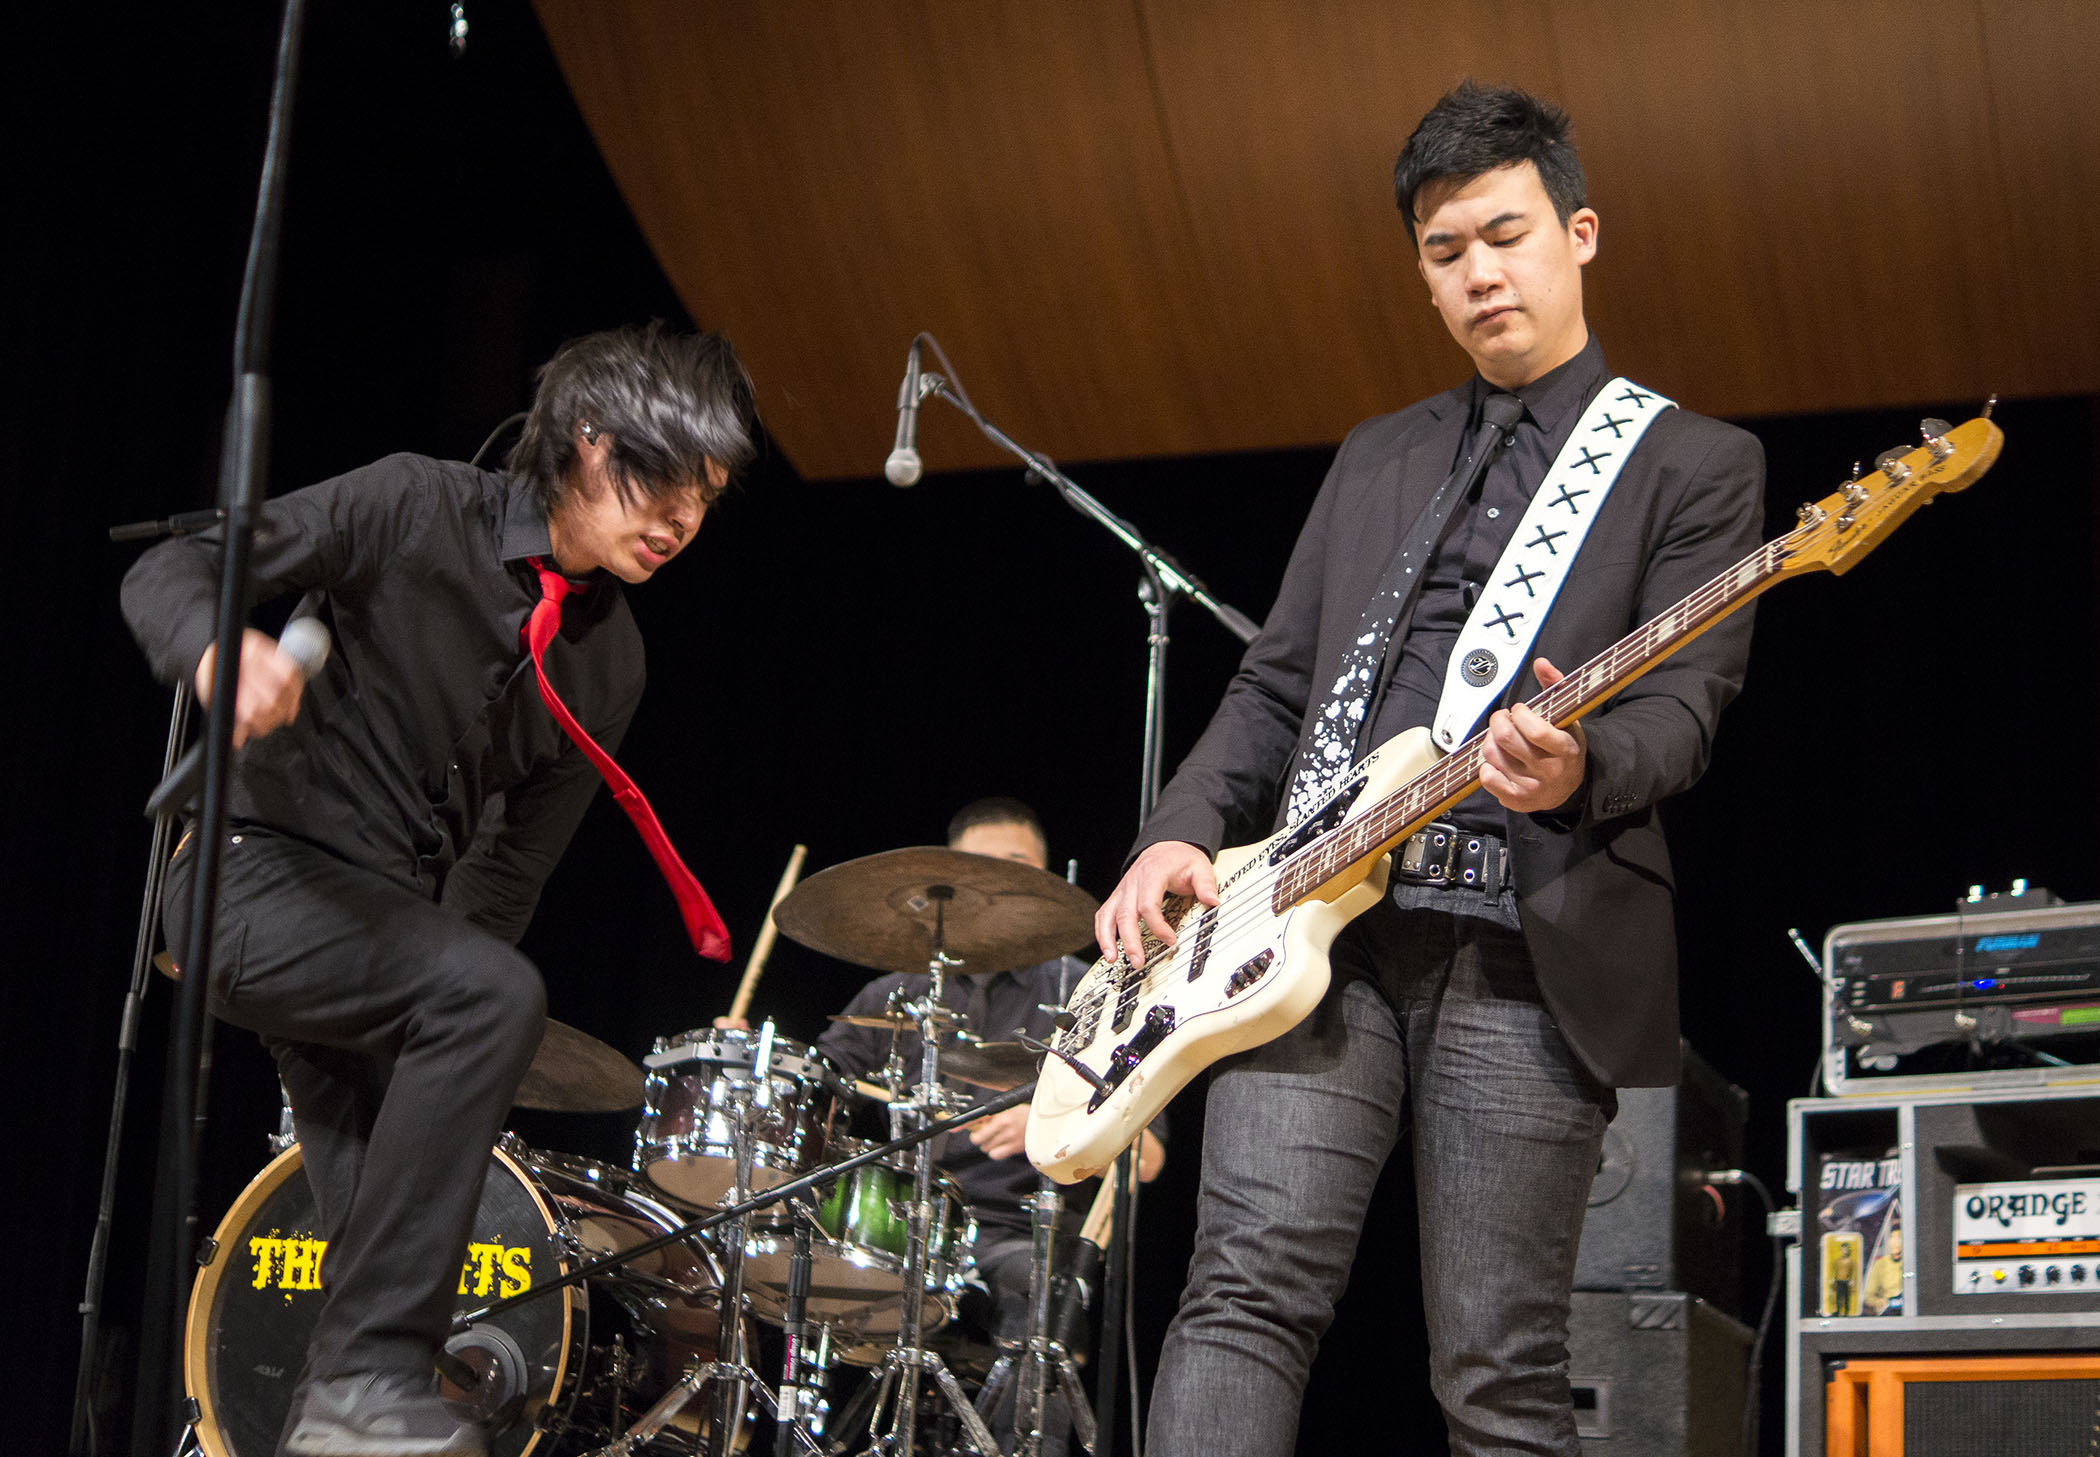 The Slants perform in the Old Administration Building Auditorium at Fresno City College on April 4, 2017.